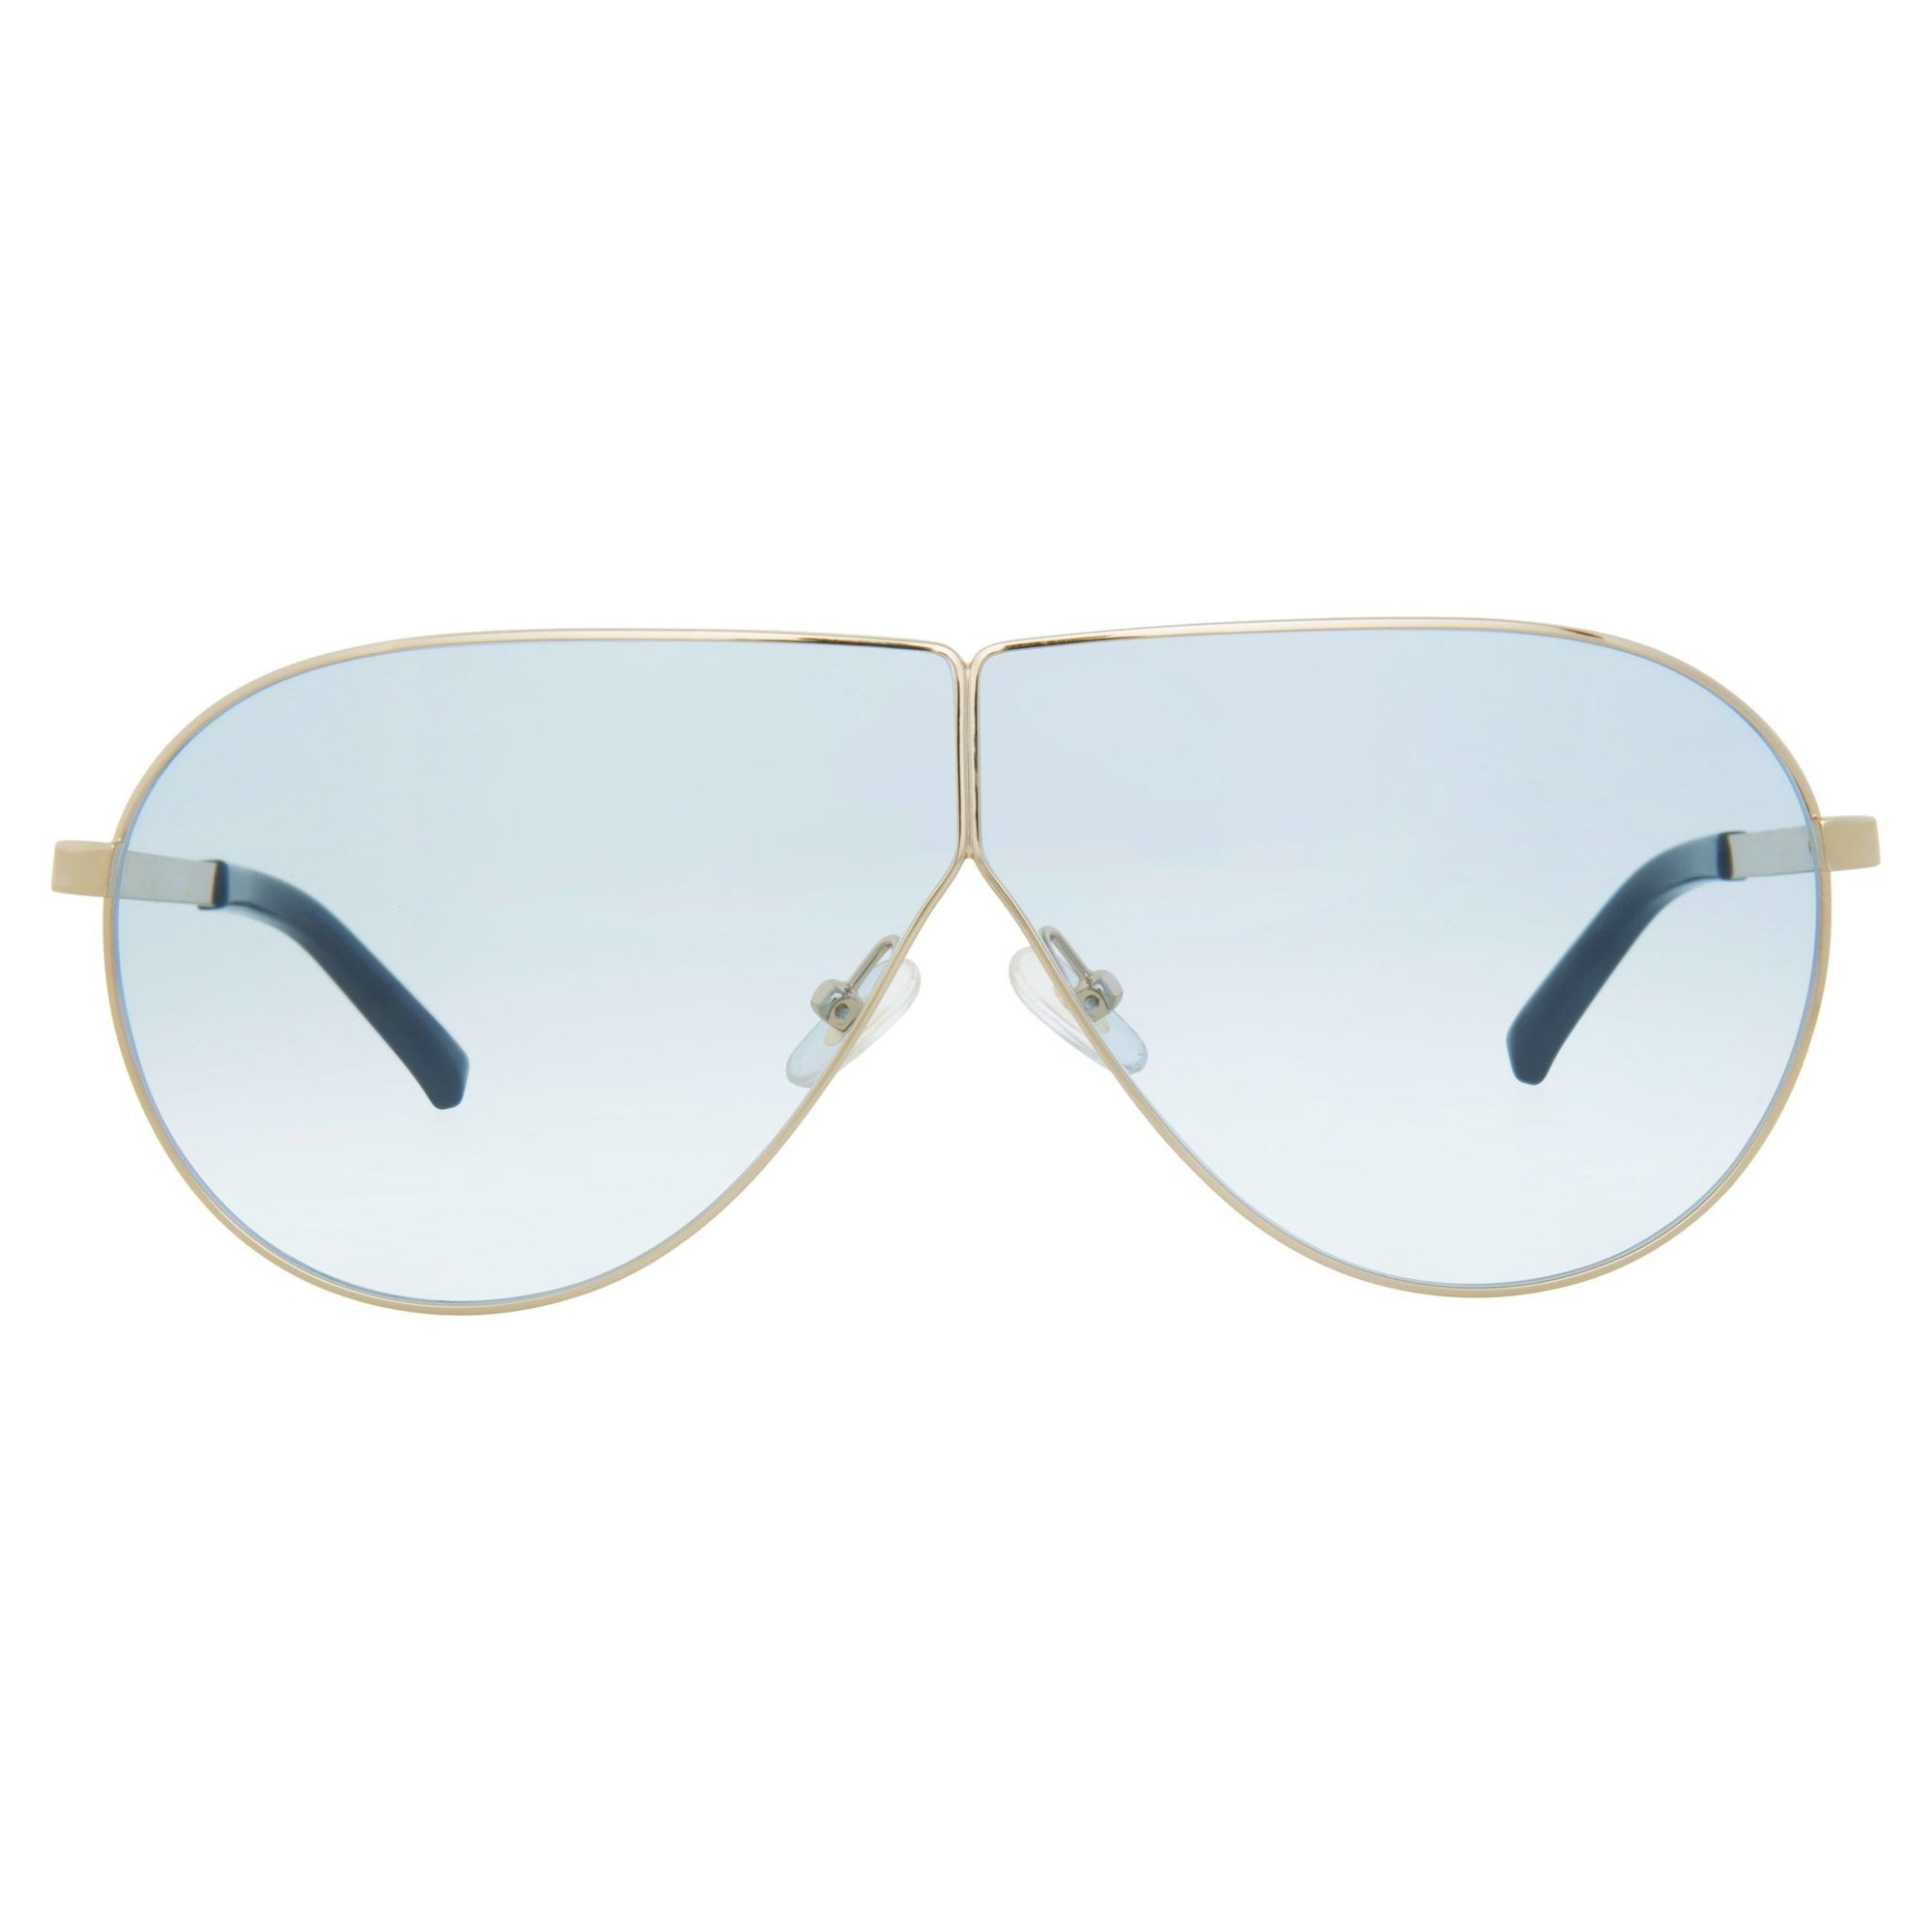 Phillip Lim Sunglasses Women's Shield Shape Light Gold/Black CAT1 Light Blue Lenses PL171C1SUN - Watches & Crystals